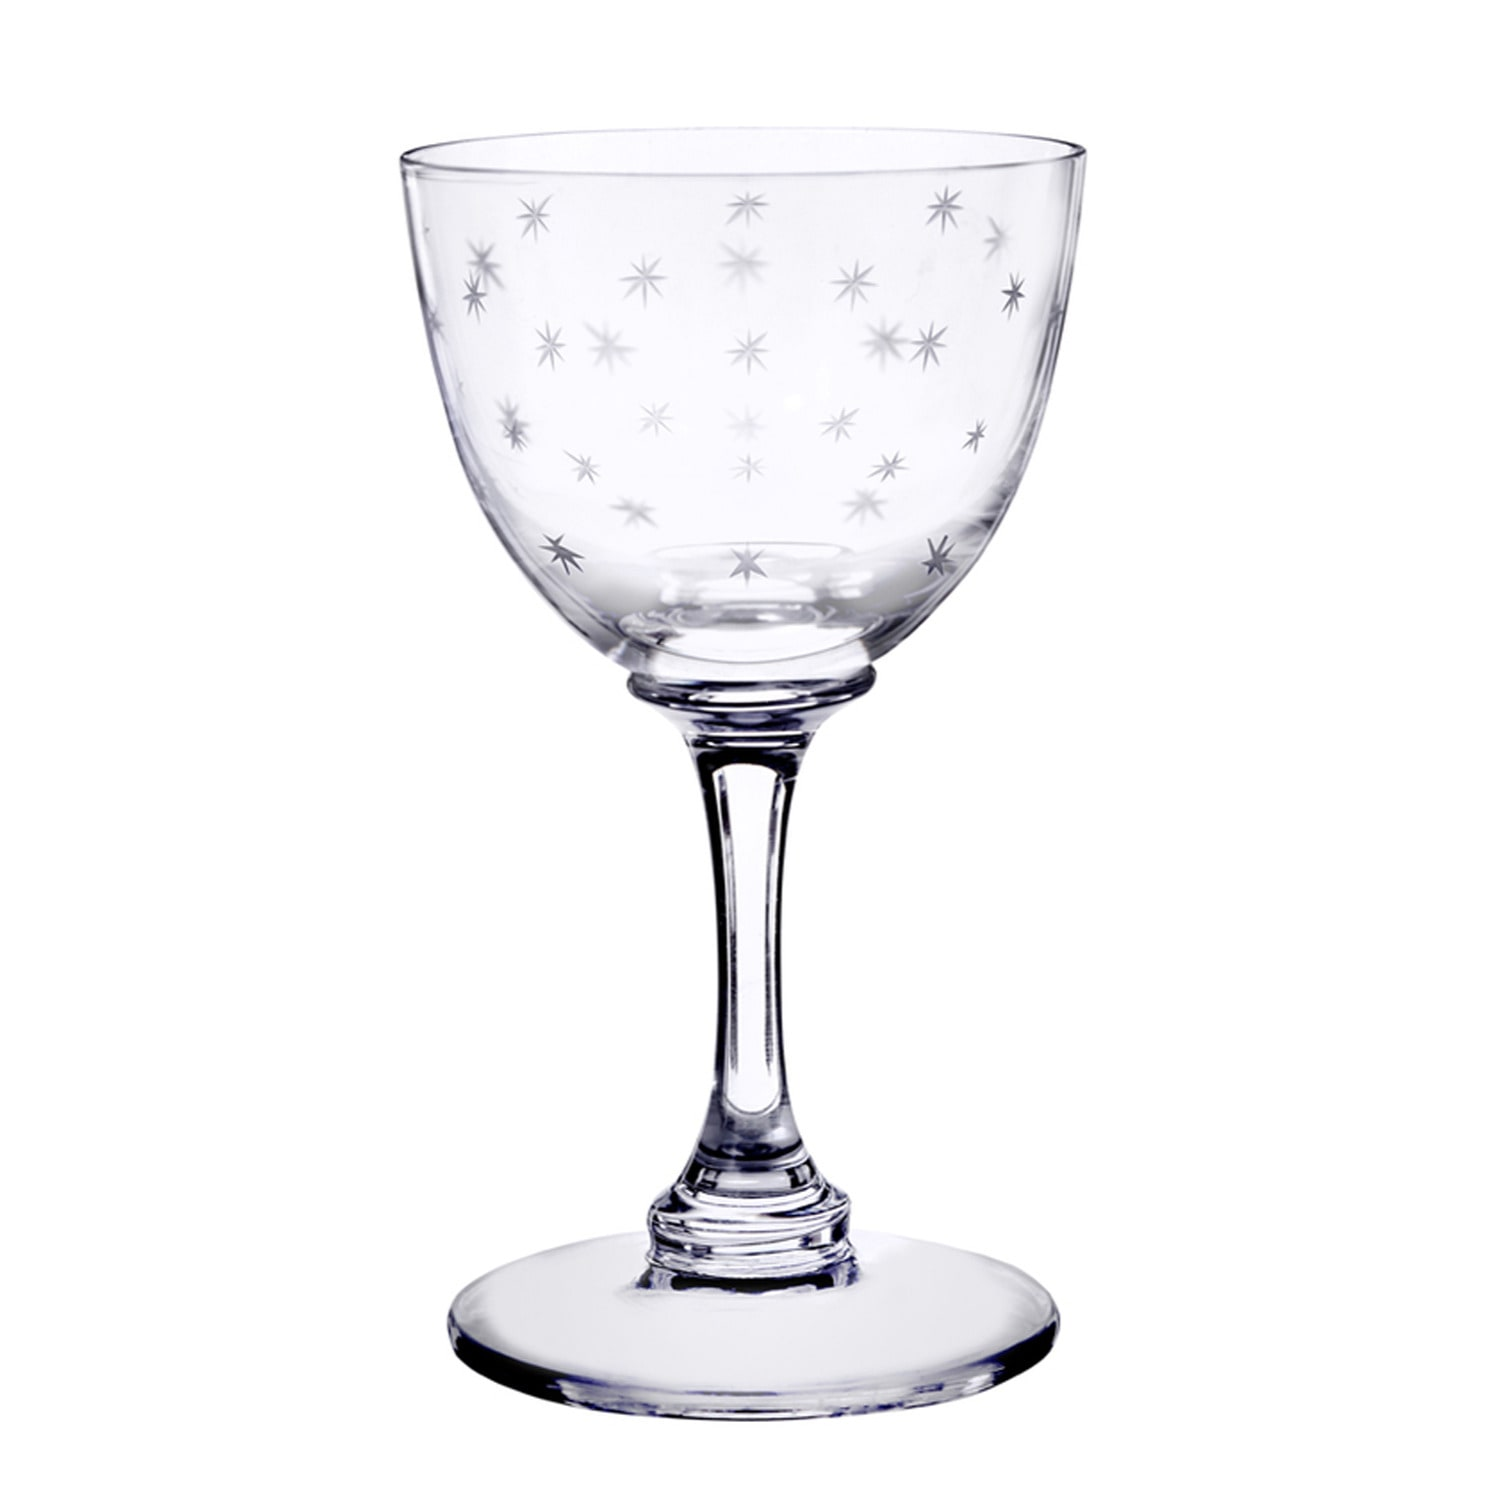 The Vintage List - Six Hand-Engraved Crystal Liqueur Glasses with Star Design